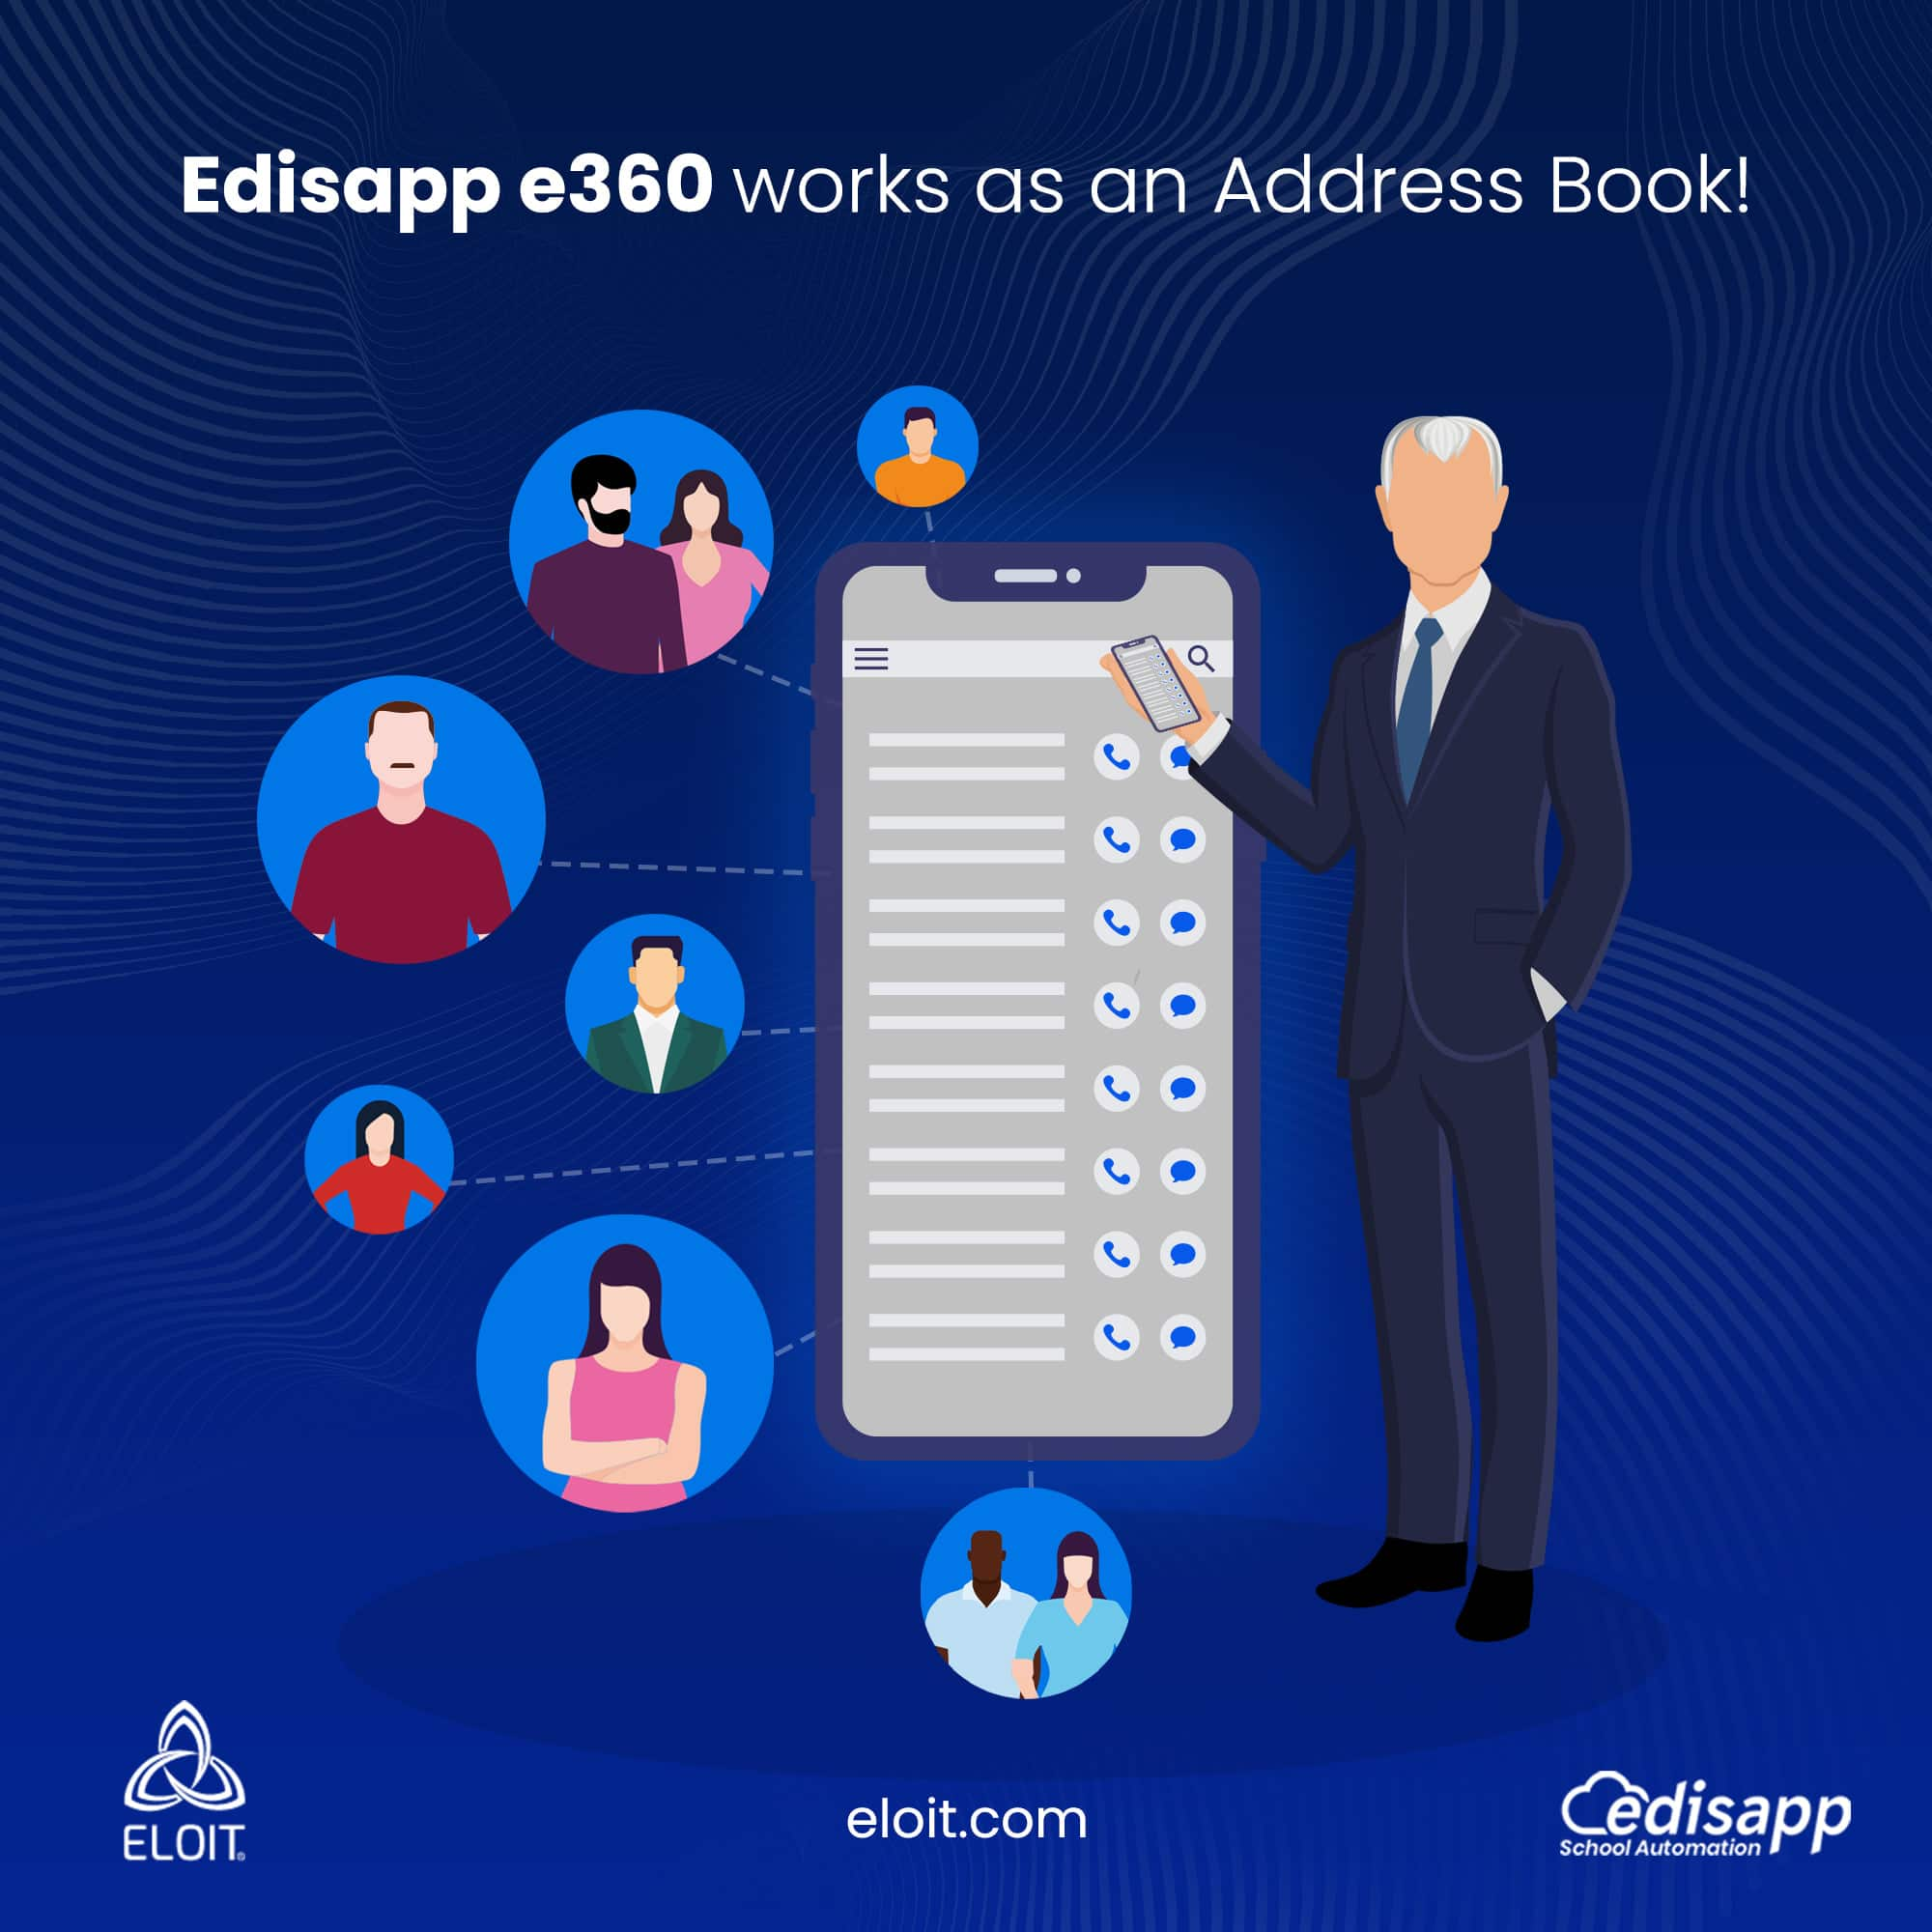 Edisapp-e360 works as a school address book with easy access to student and staff contact details